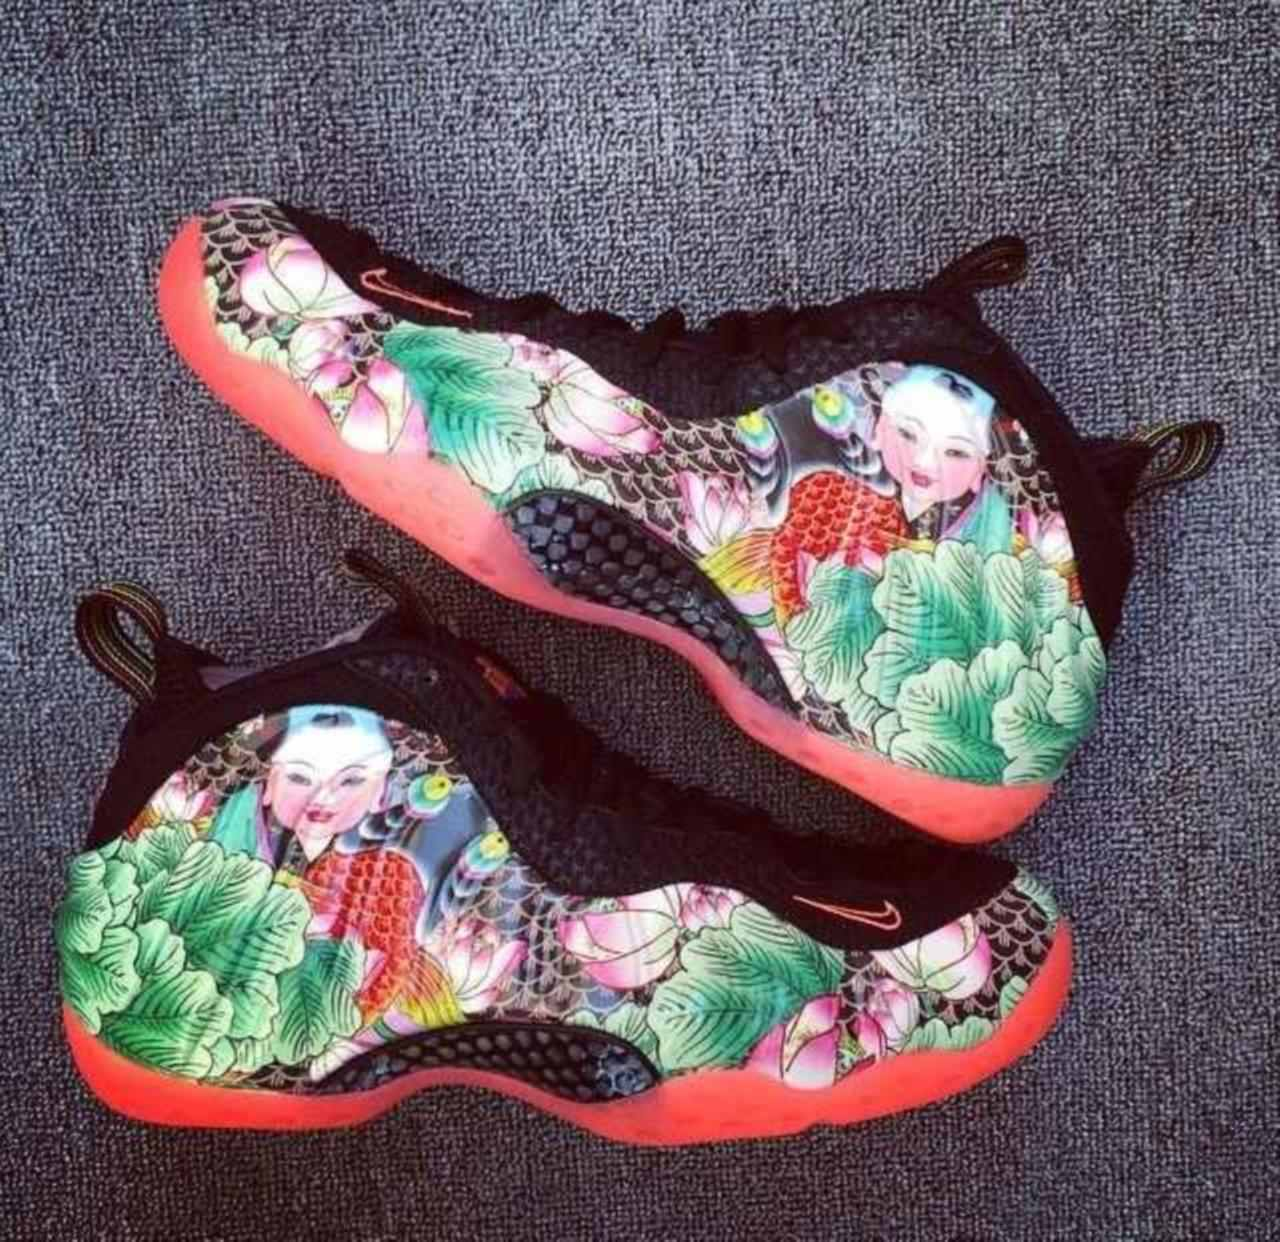 NIKE FOAMPOSITE ONE TIANJIN- PROMO  NOT FOR SALE-ONE OF A KIND-SZ 13-NEW IN BOX